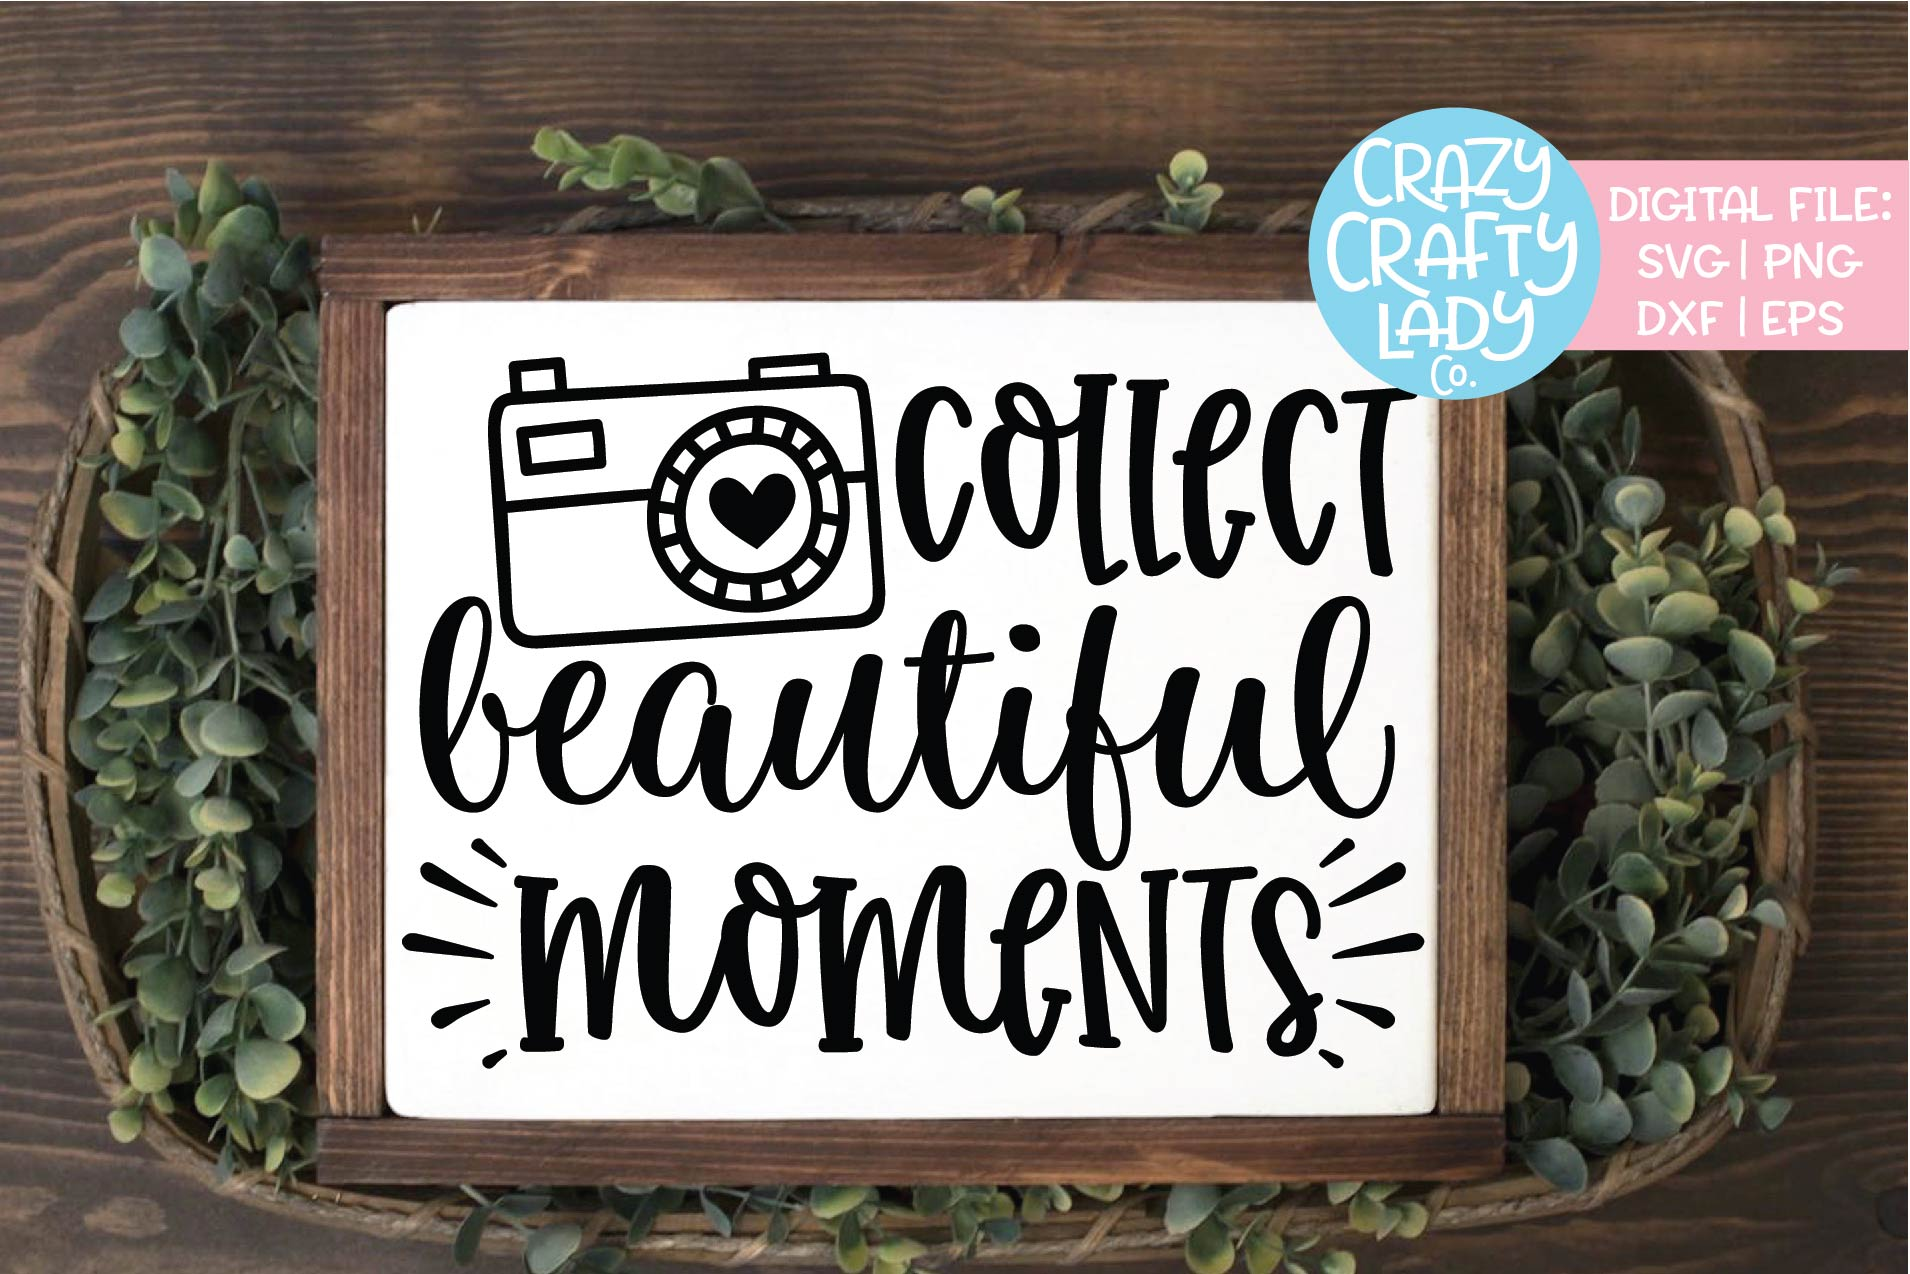 Photography SVG DXF EPS PNG Cut File Bundle example image 5